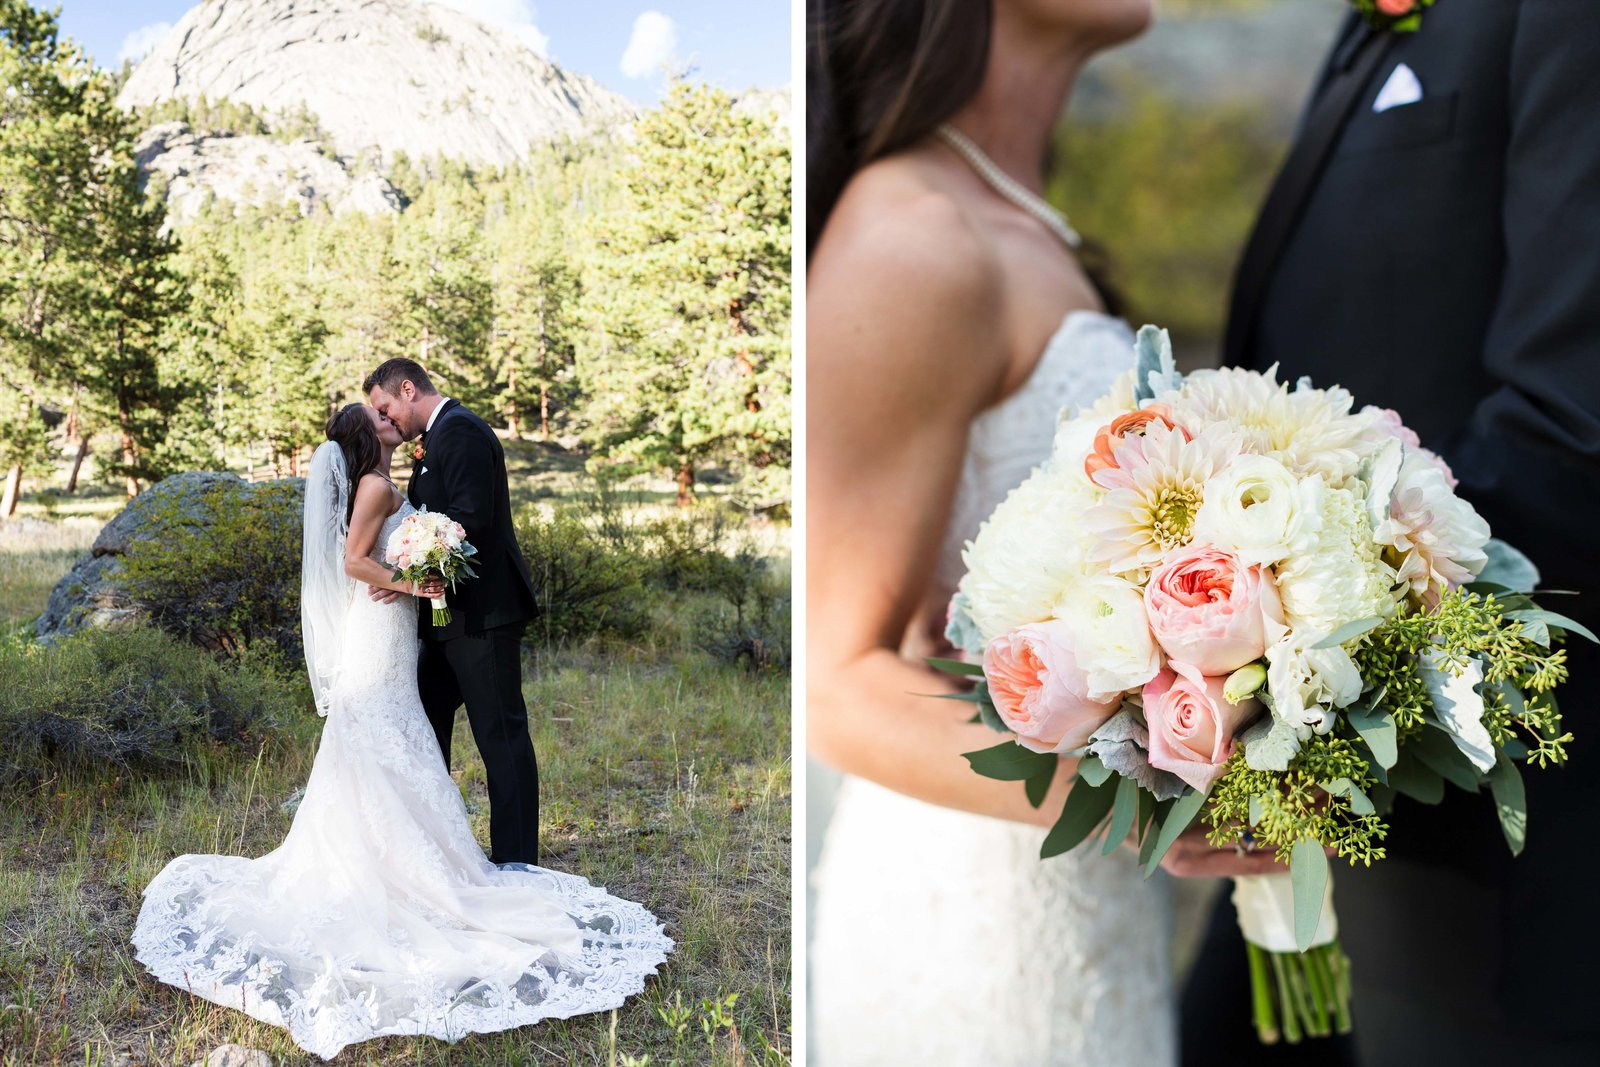 Jessi-Zach-Photography-Colorado-Mountain-Wedding-Photographer-Della-Terra-Mountain-Chateau_54